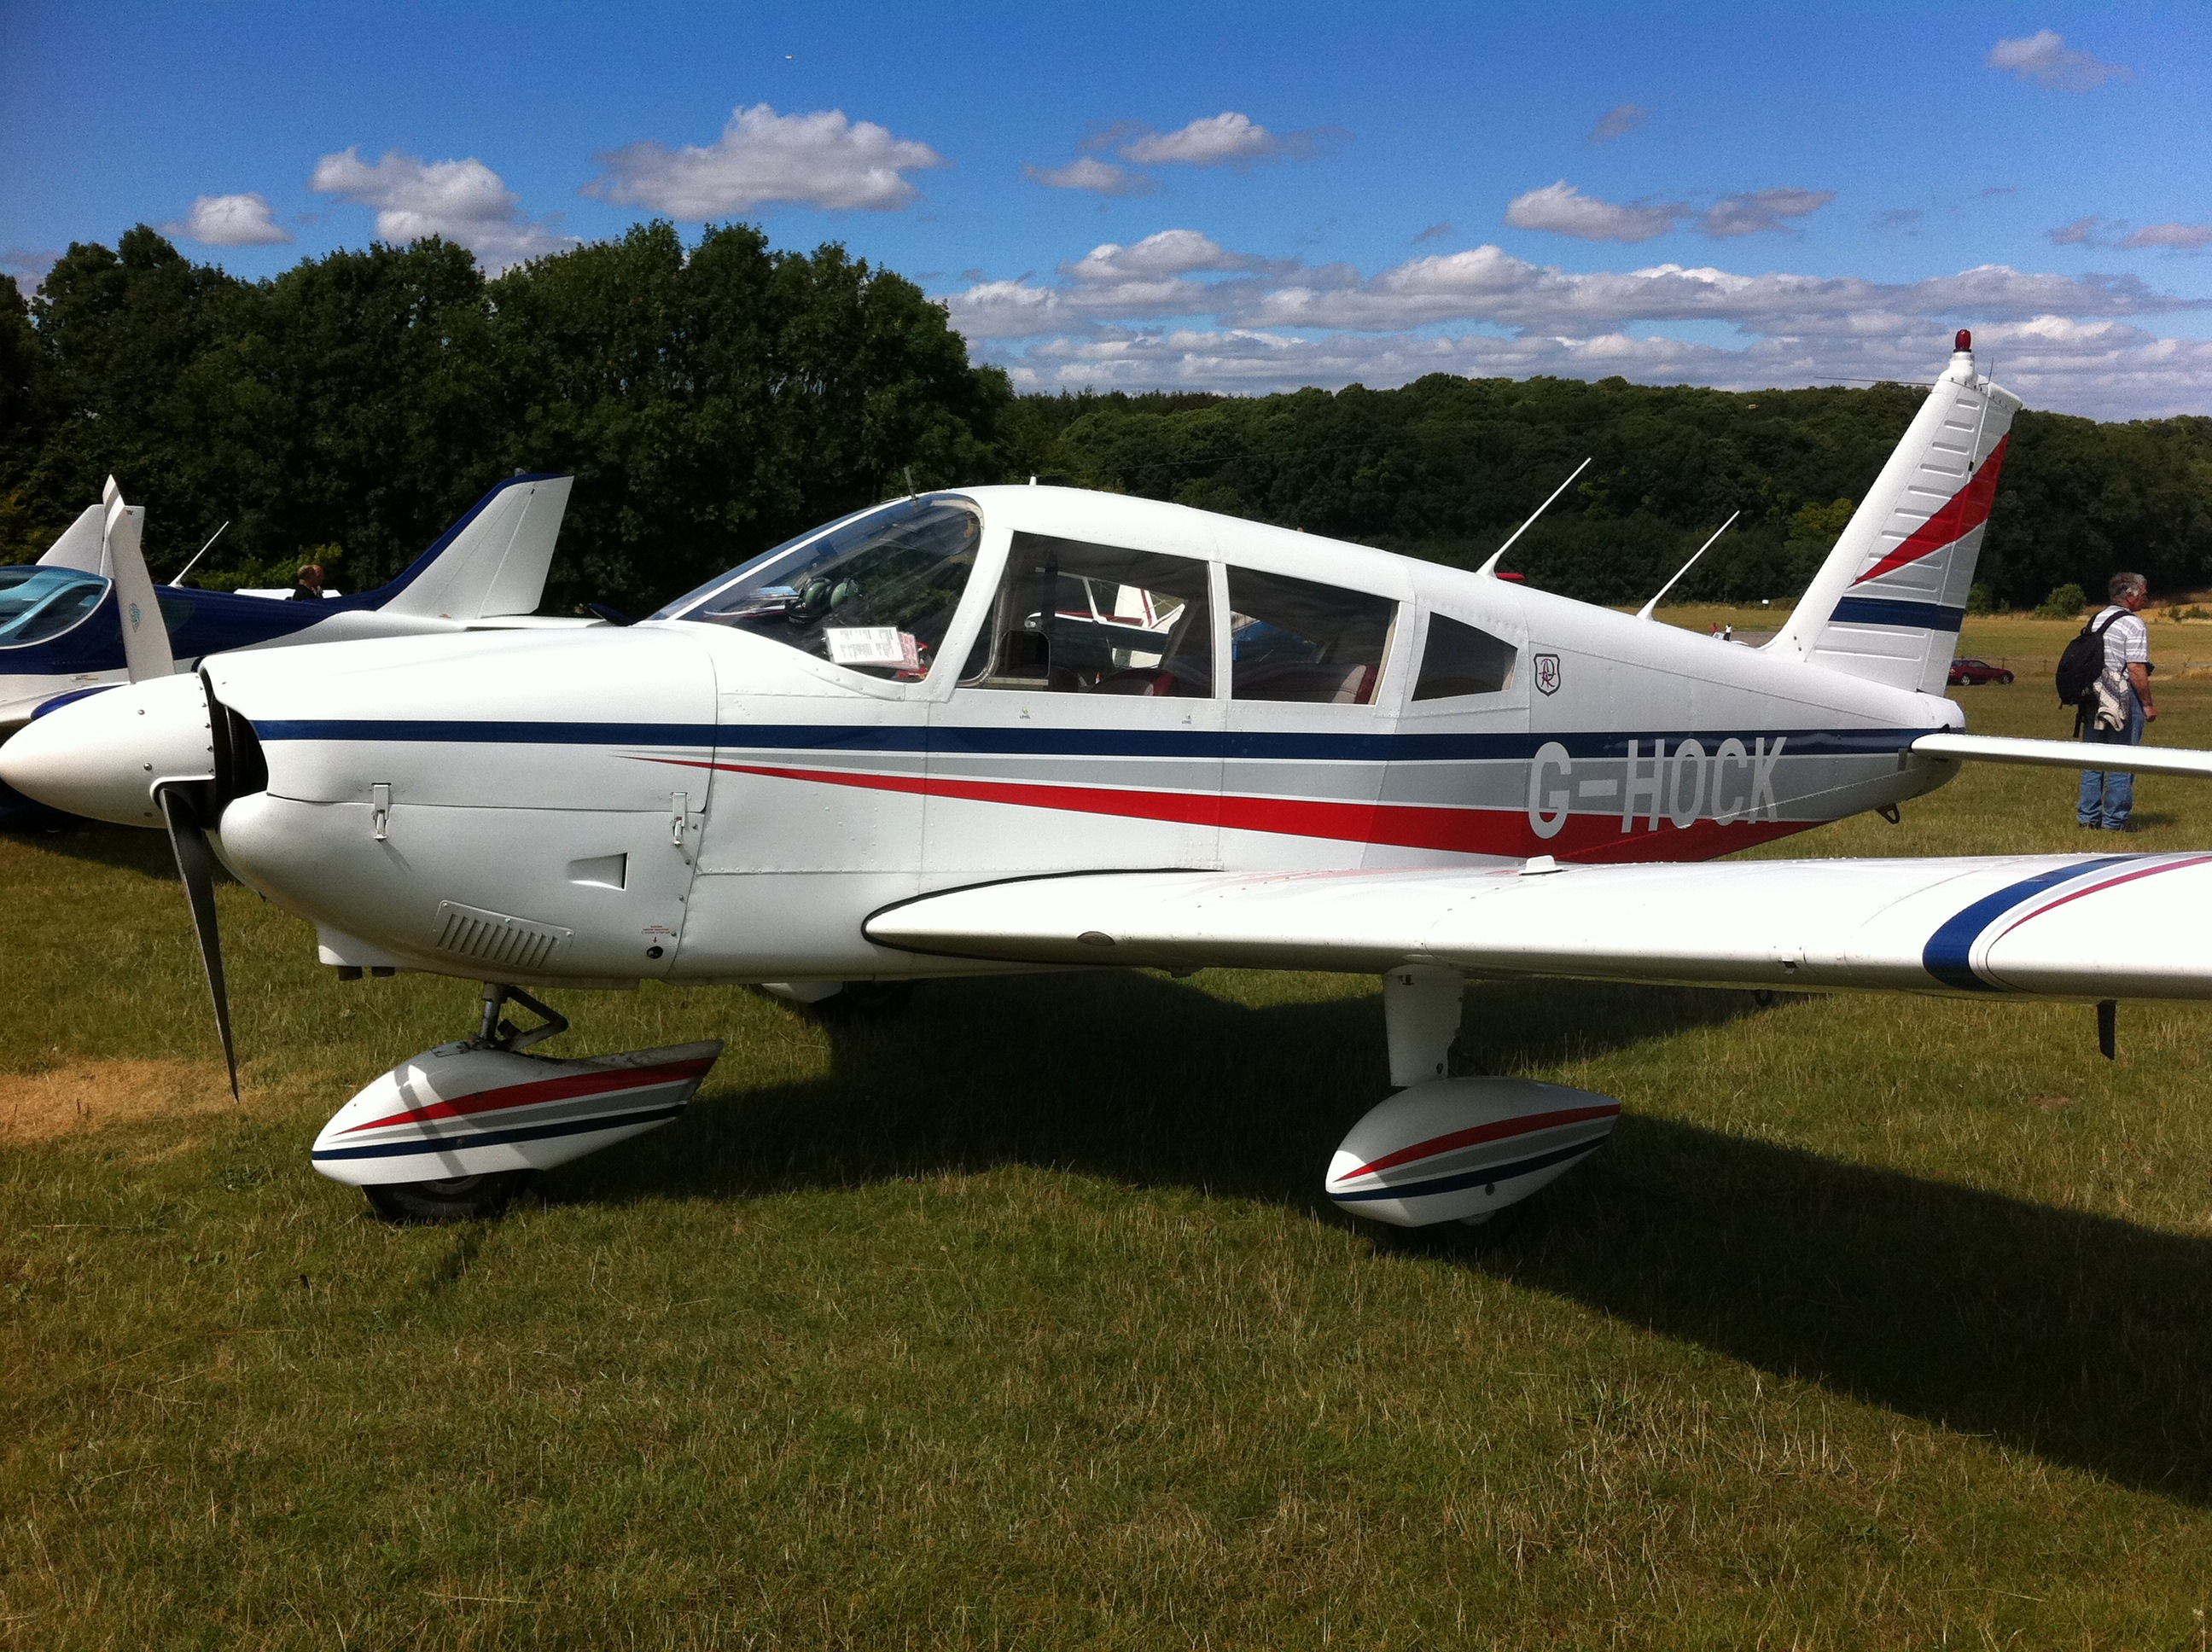 Fileg Hock Piper Pa 28 180 Cherokee D 9664790307